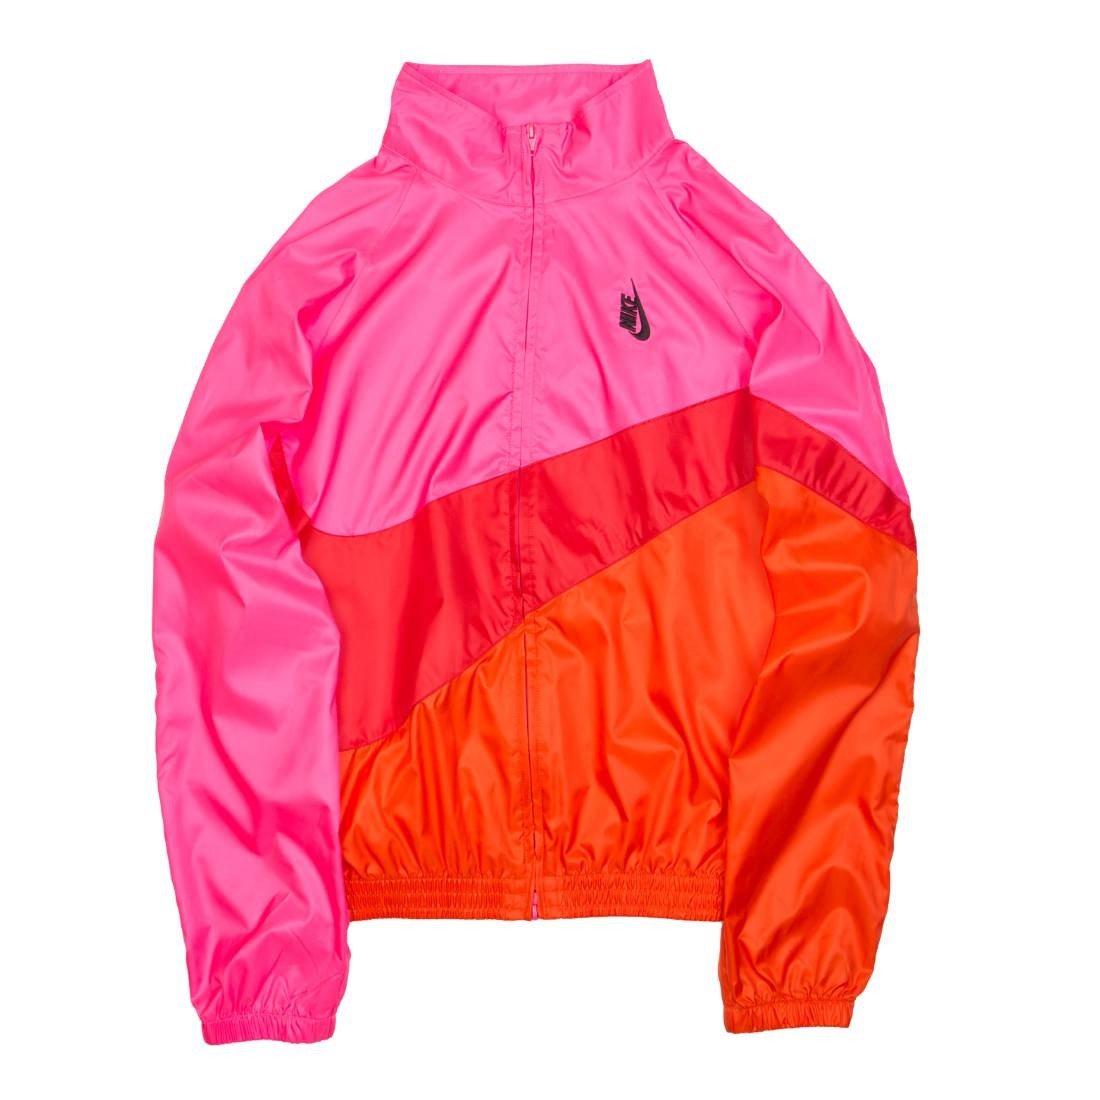 ee23705626d2 nikelab men heritage jacket hyper pink university red black